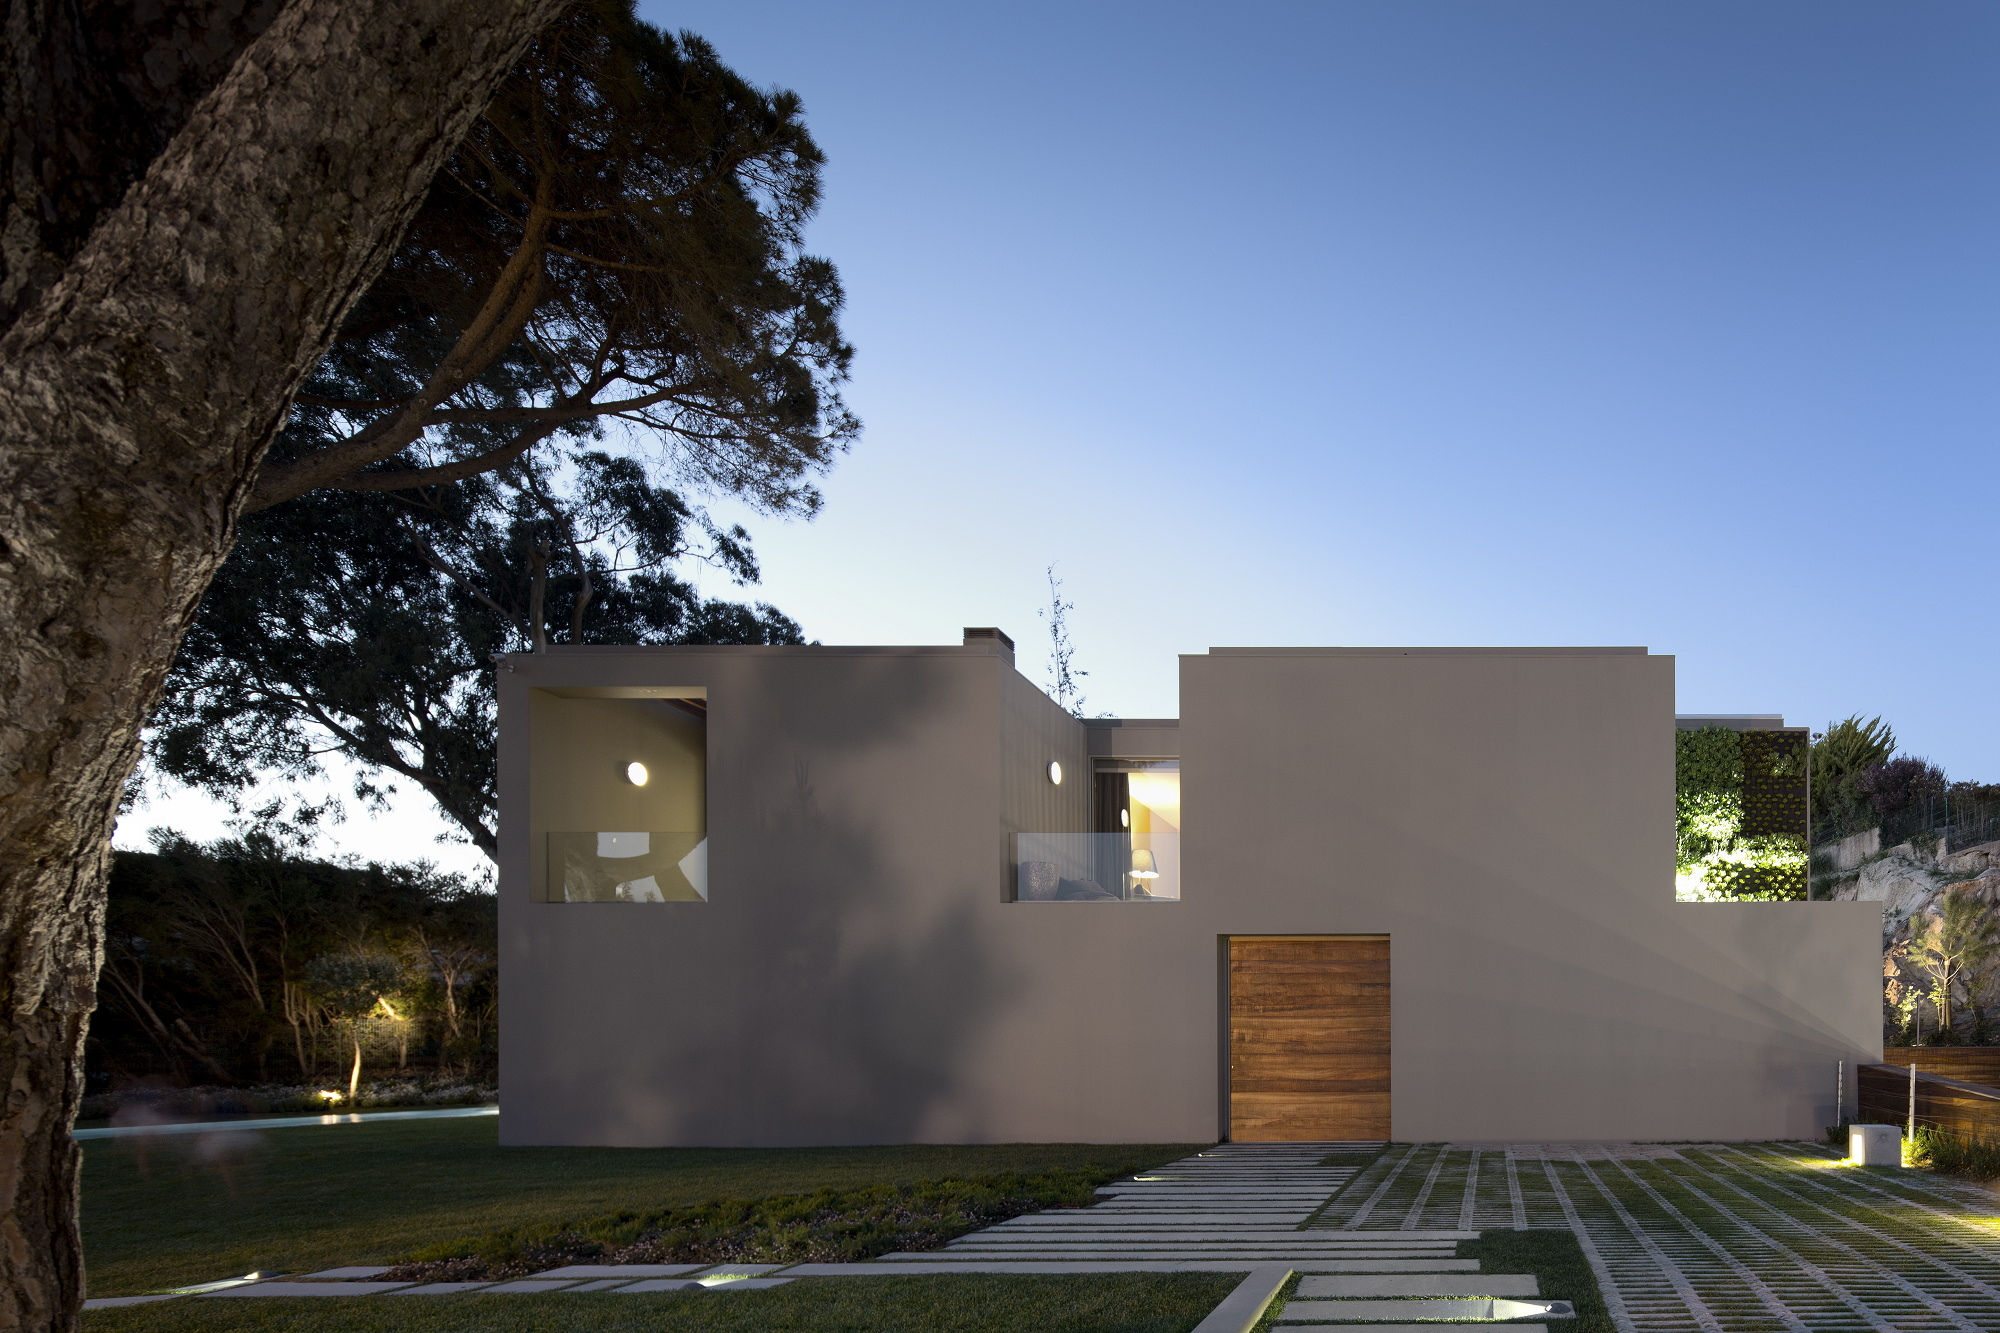 Gallery of house in quinta patino frederico valsassina for Casa quinta minimalista